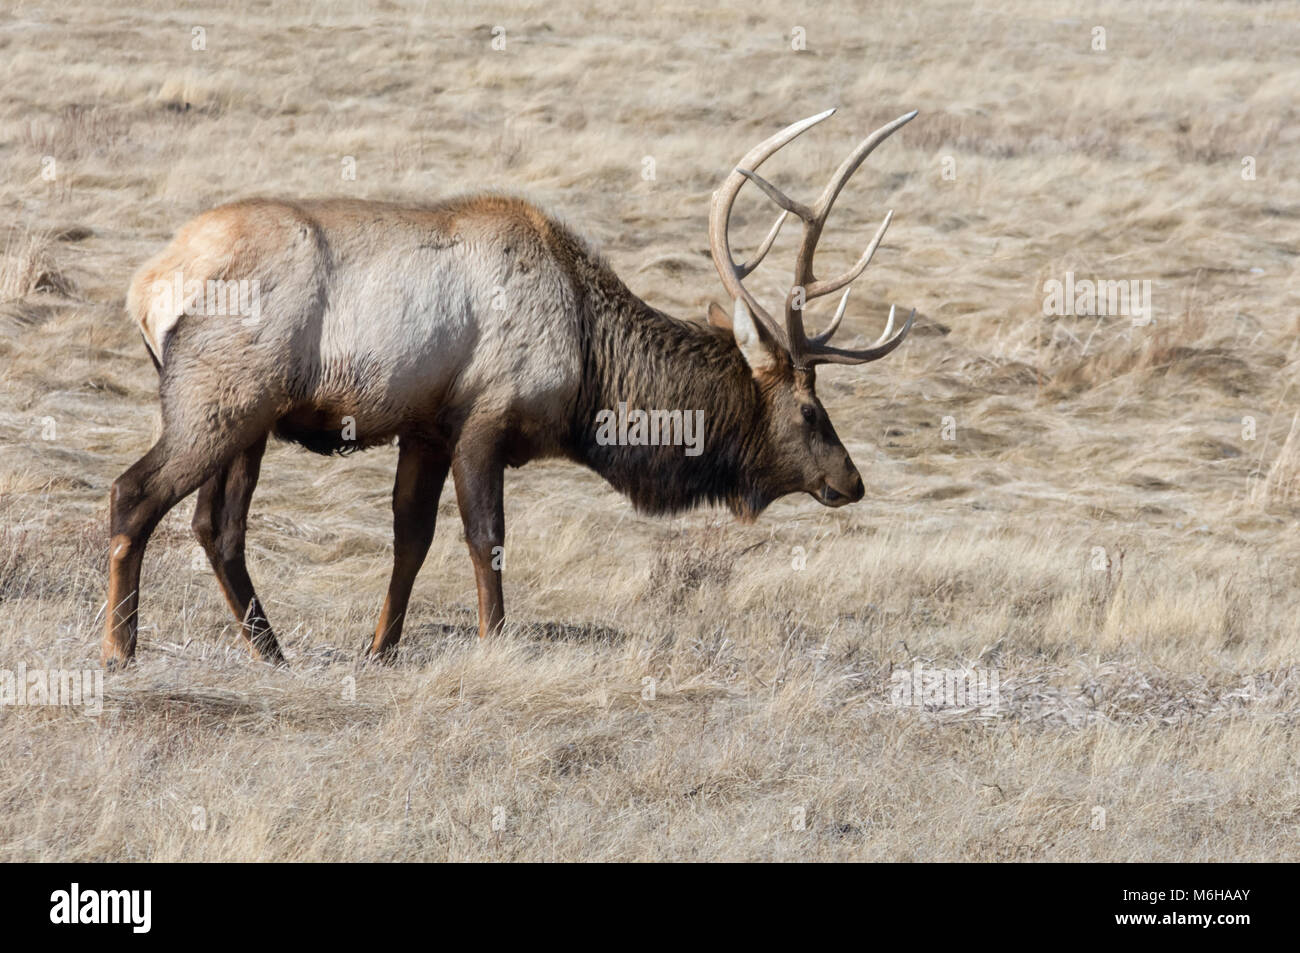 A bull elk ambels through dry golden grass looking for his next meal. - Stock Image